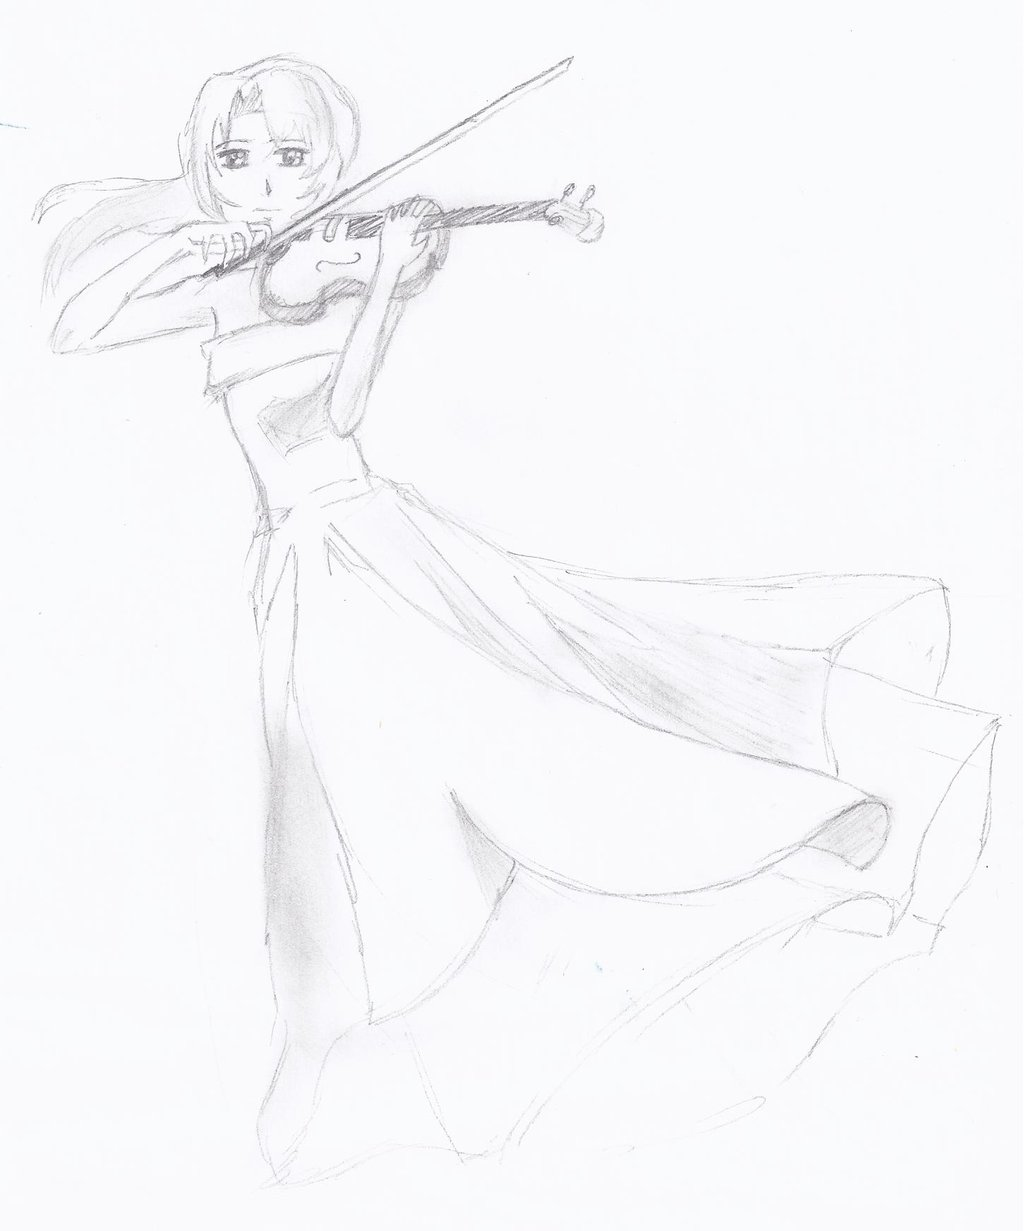 Drawn violinist anime With by violin violin on